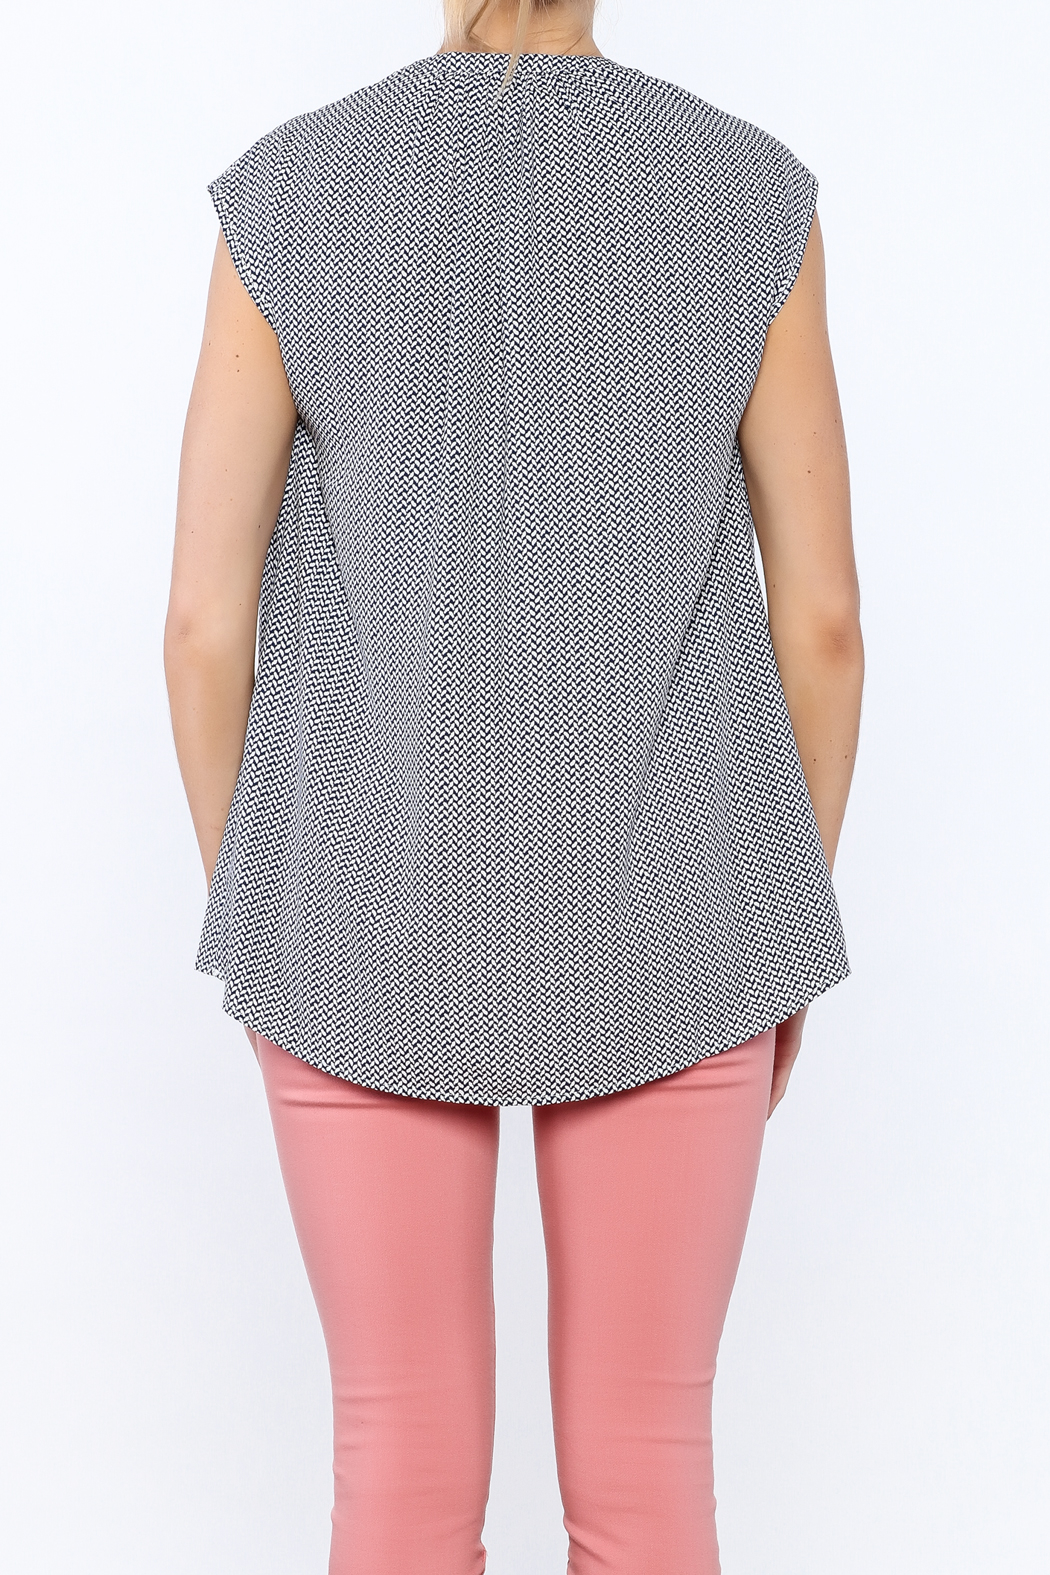 Zoa Blue Printed Boxy Top - Back Cropped Image